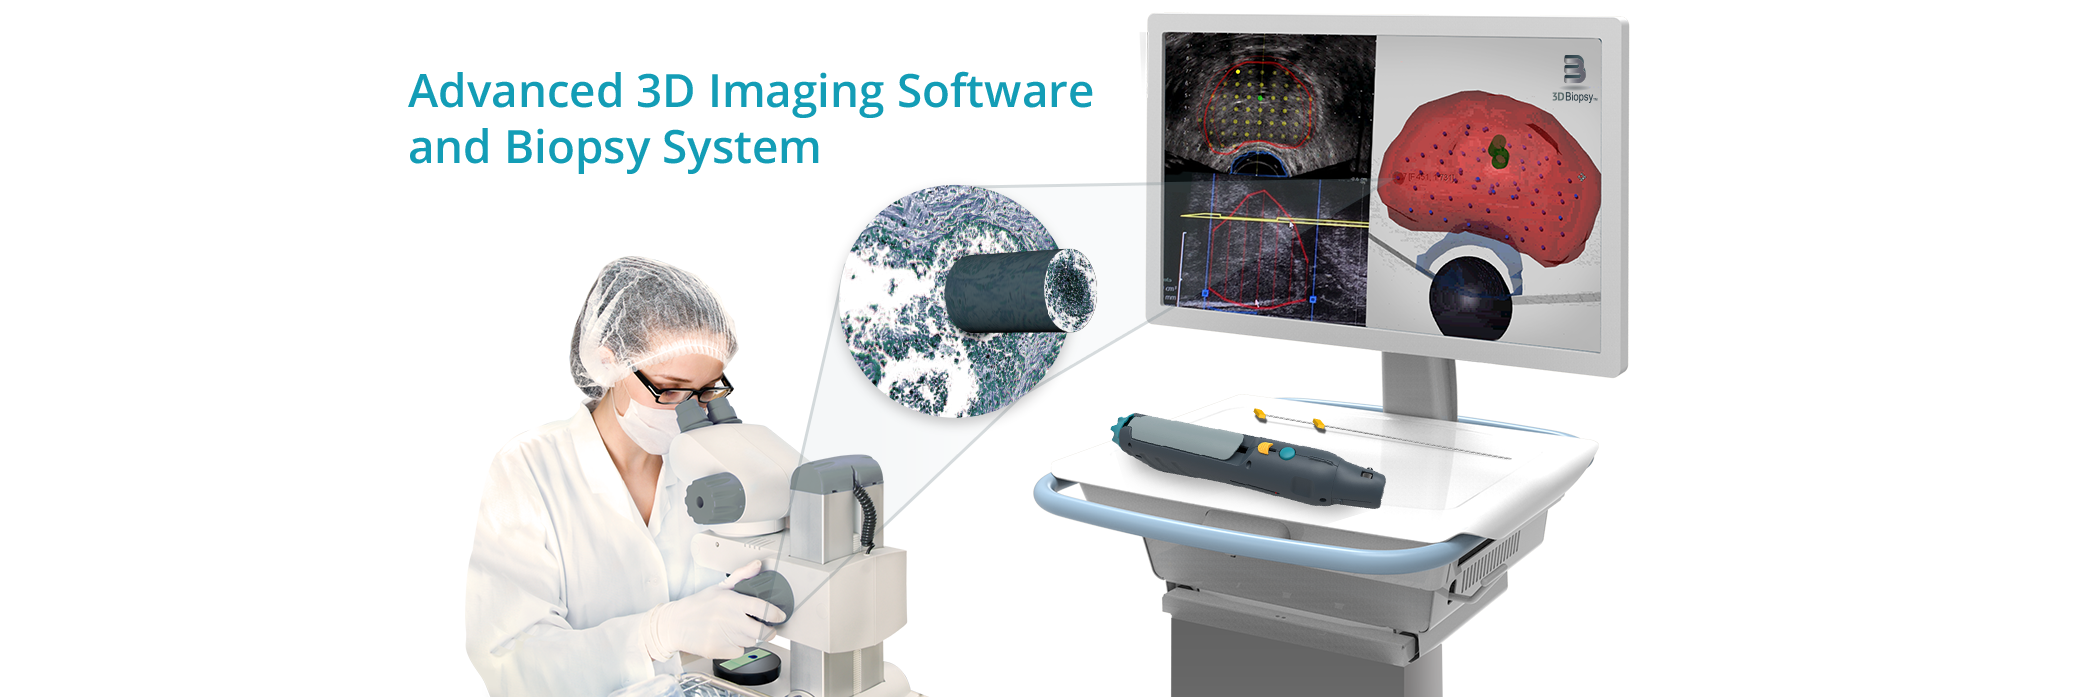 The Next Dimension: Advanced 3D Imaging Software and Biopsy System